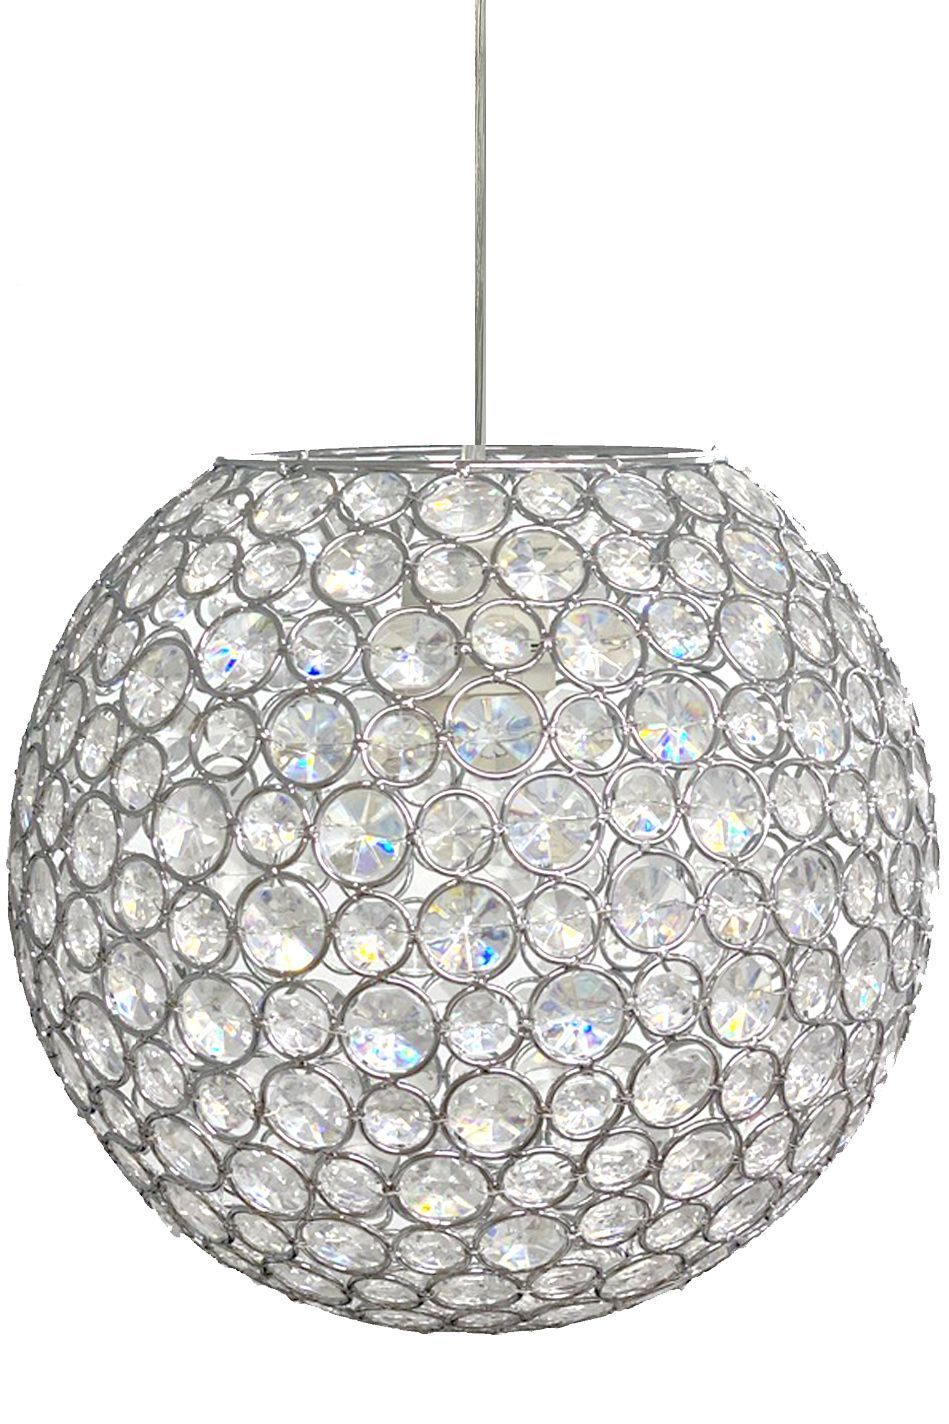 Chandelier Crystal Beaded Jeweled Sphere W Light Kit 10 Crystal Chandelier Wire Fairy Lights Crystal Beads